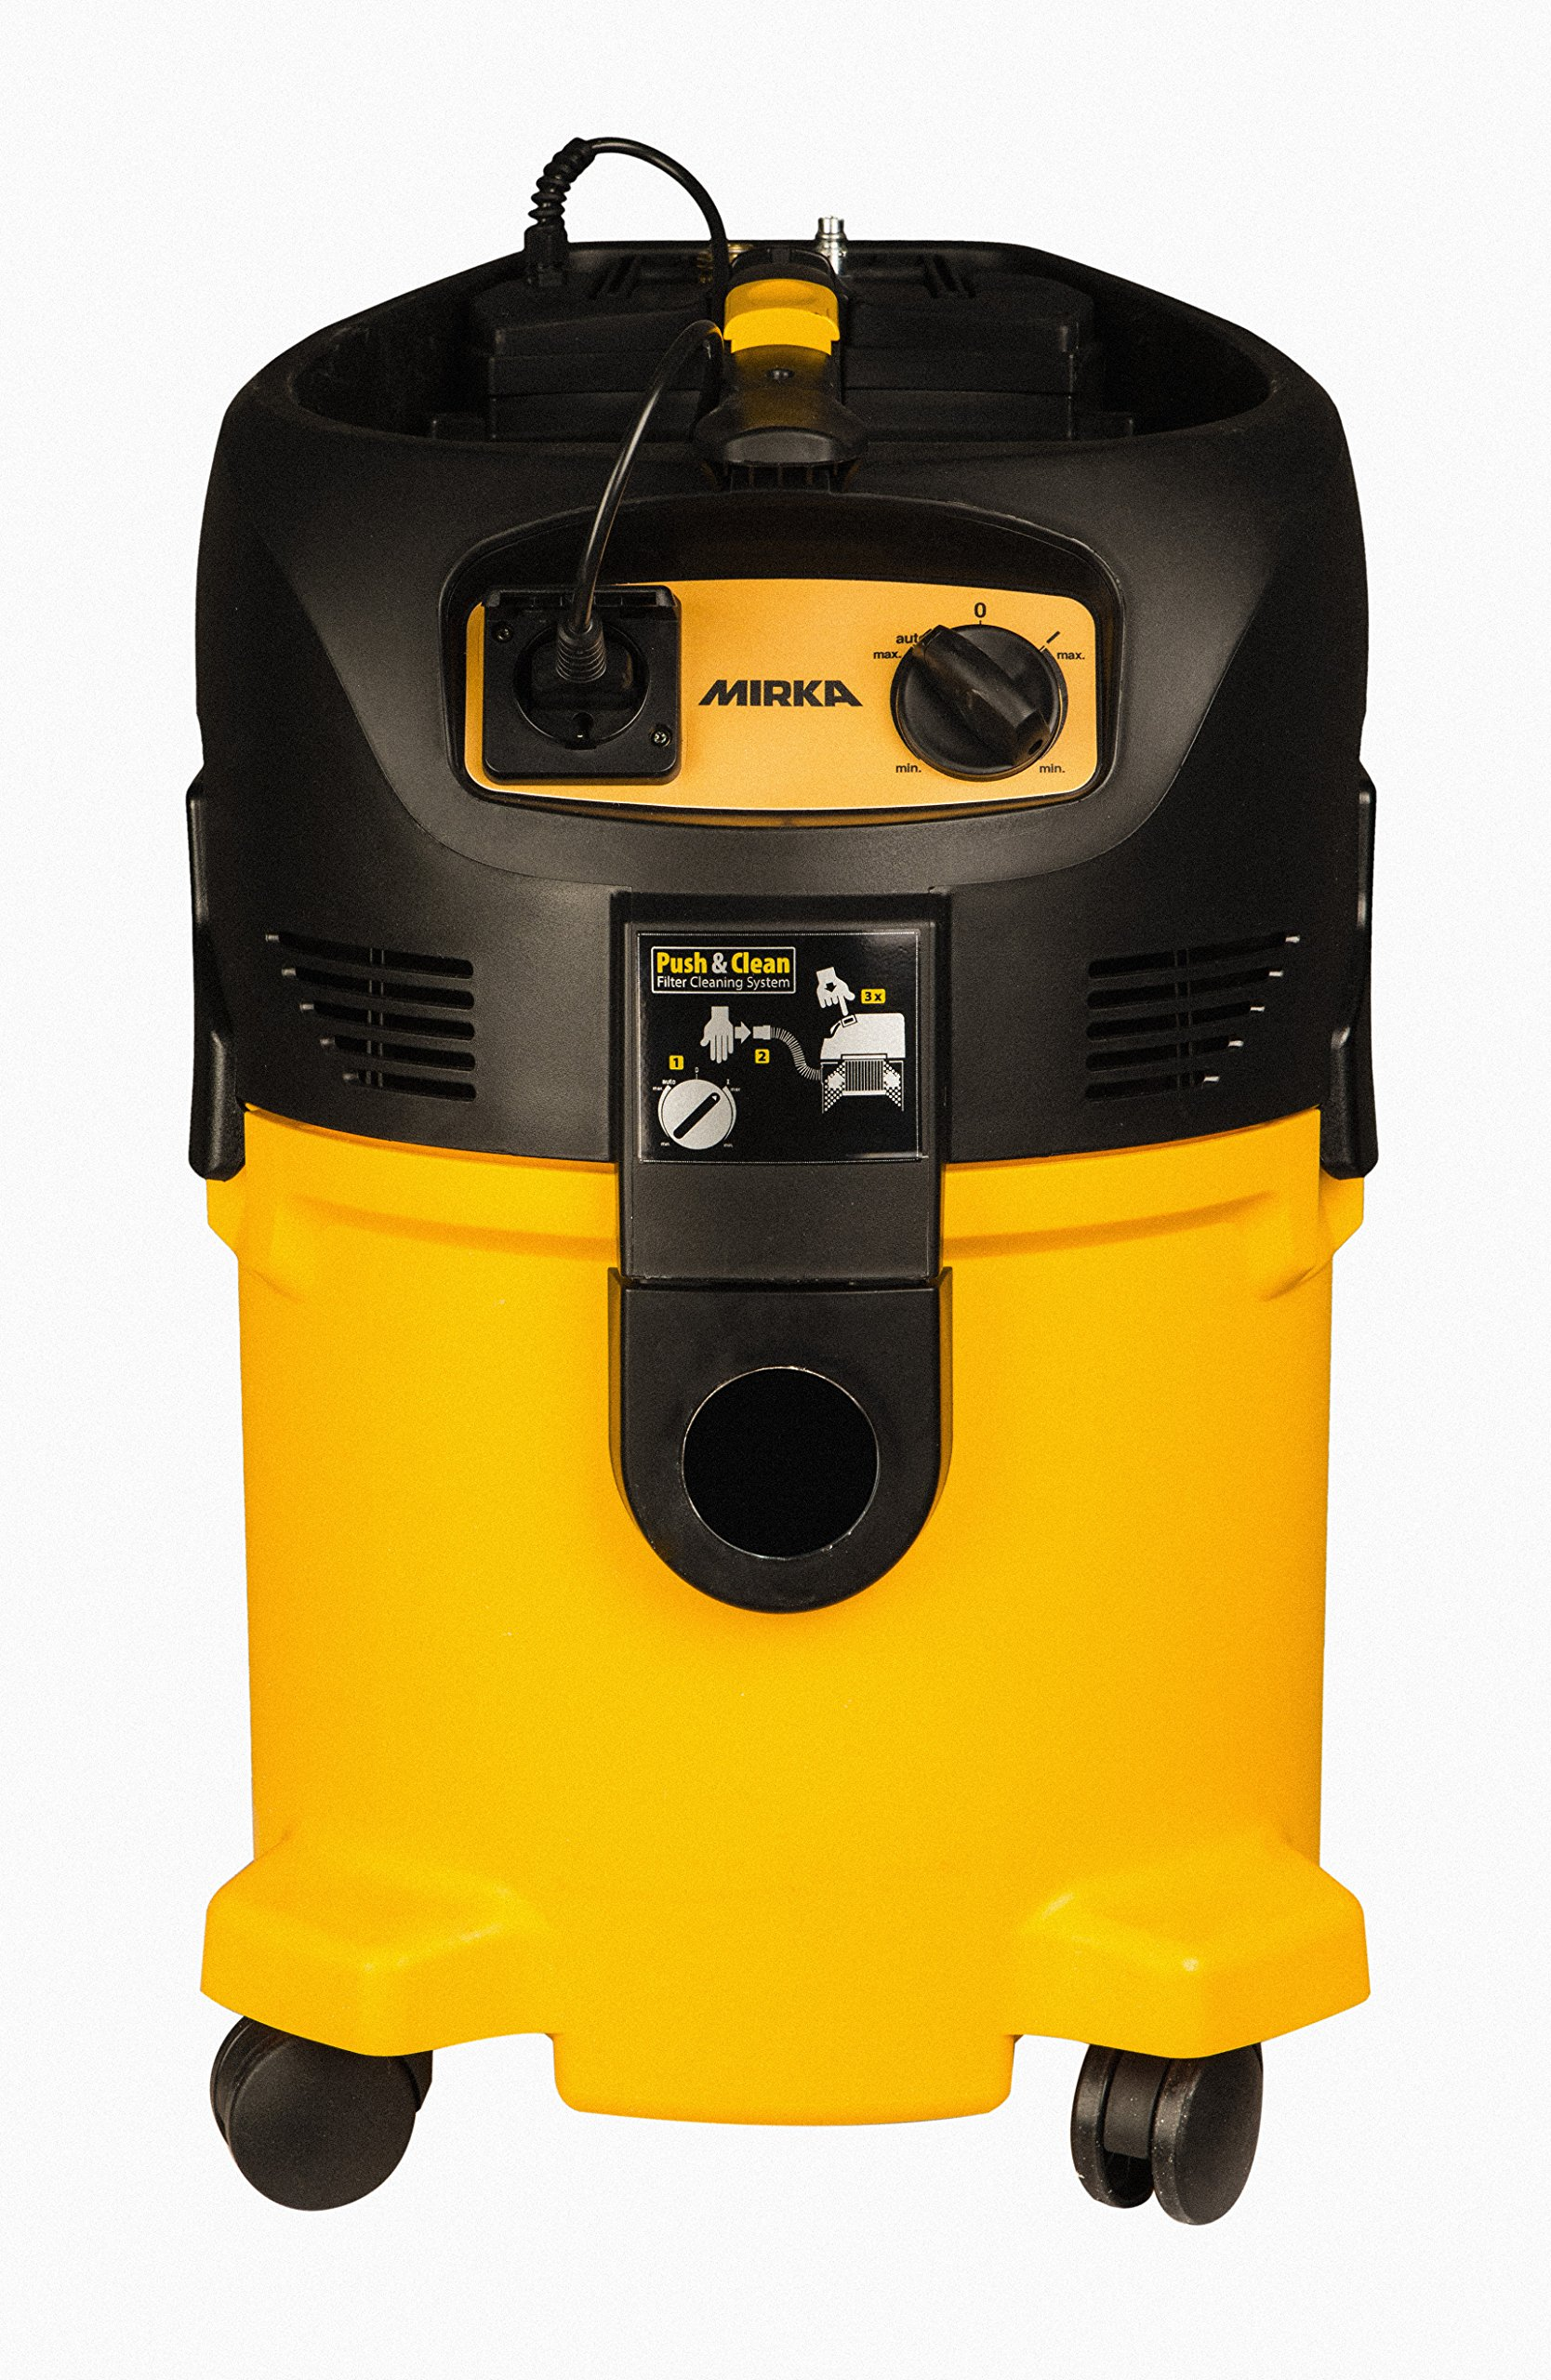 Mirka MV-912 30-Liter Portable Vacuum by Mirka